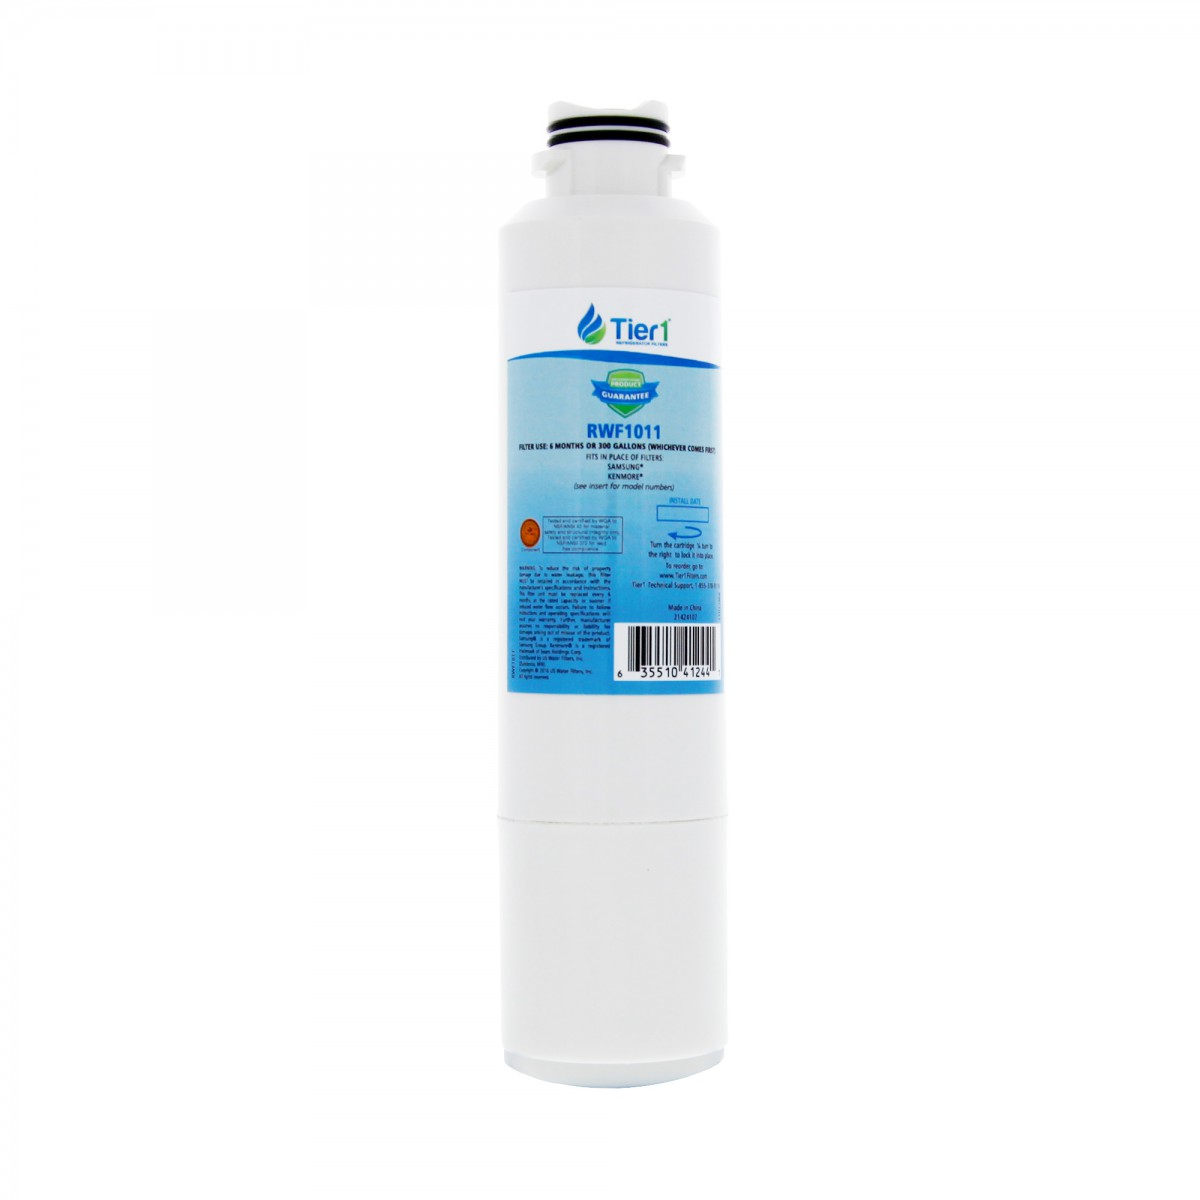 Samsung Da29 00020b Comparable Refrigerator Water Filter